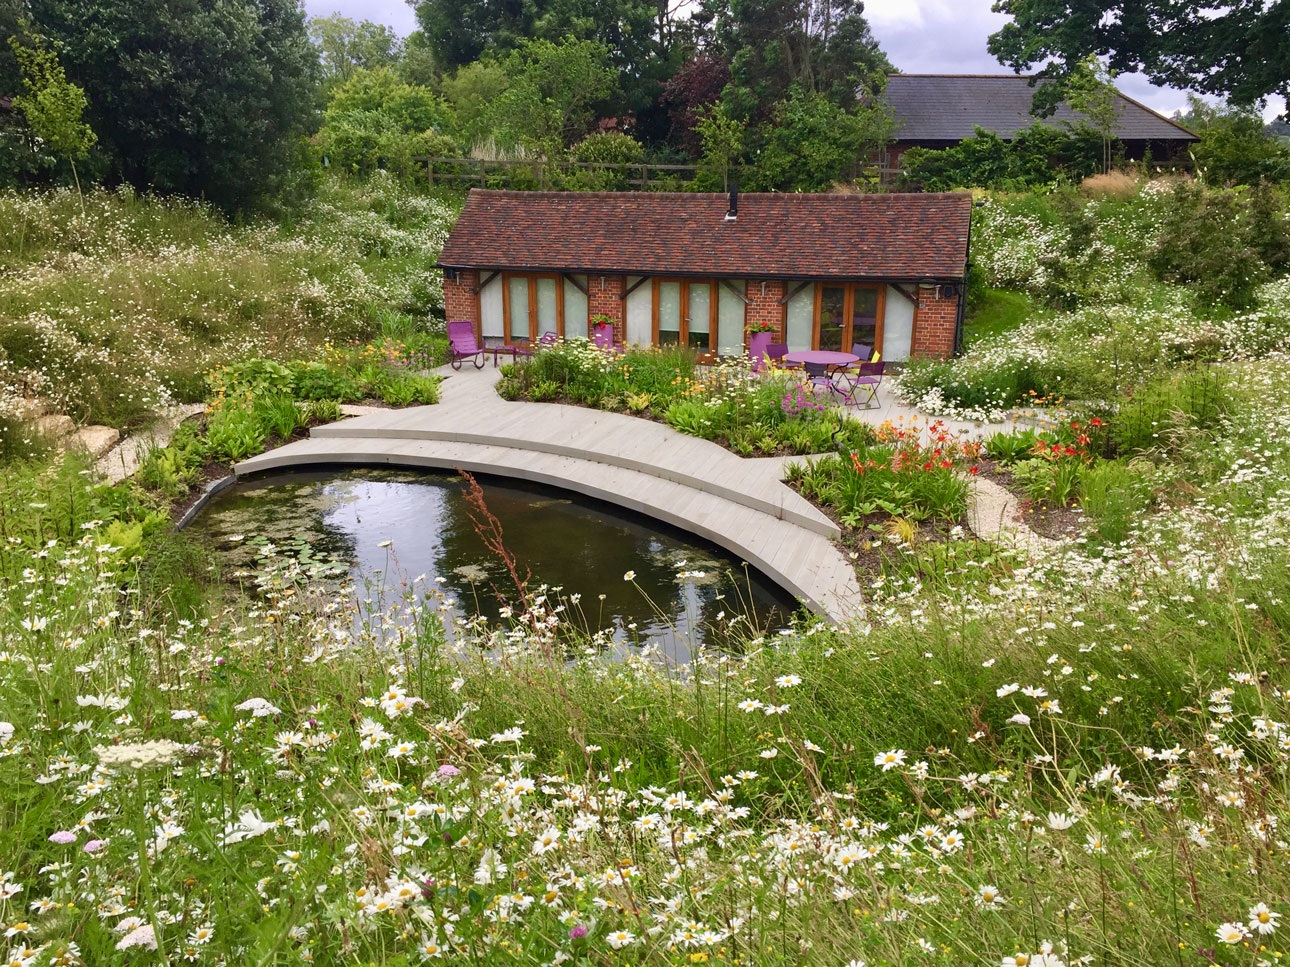 Wildlife friendly garden design with wildflower meadow sloping banks down to large pond to attract pollinators